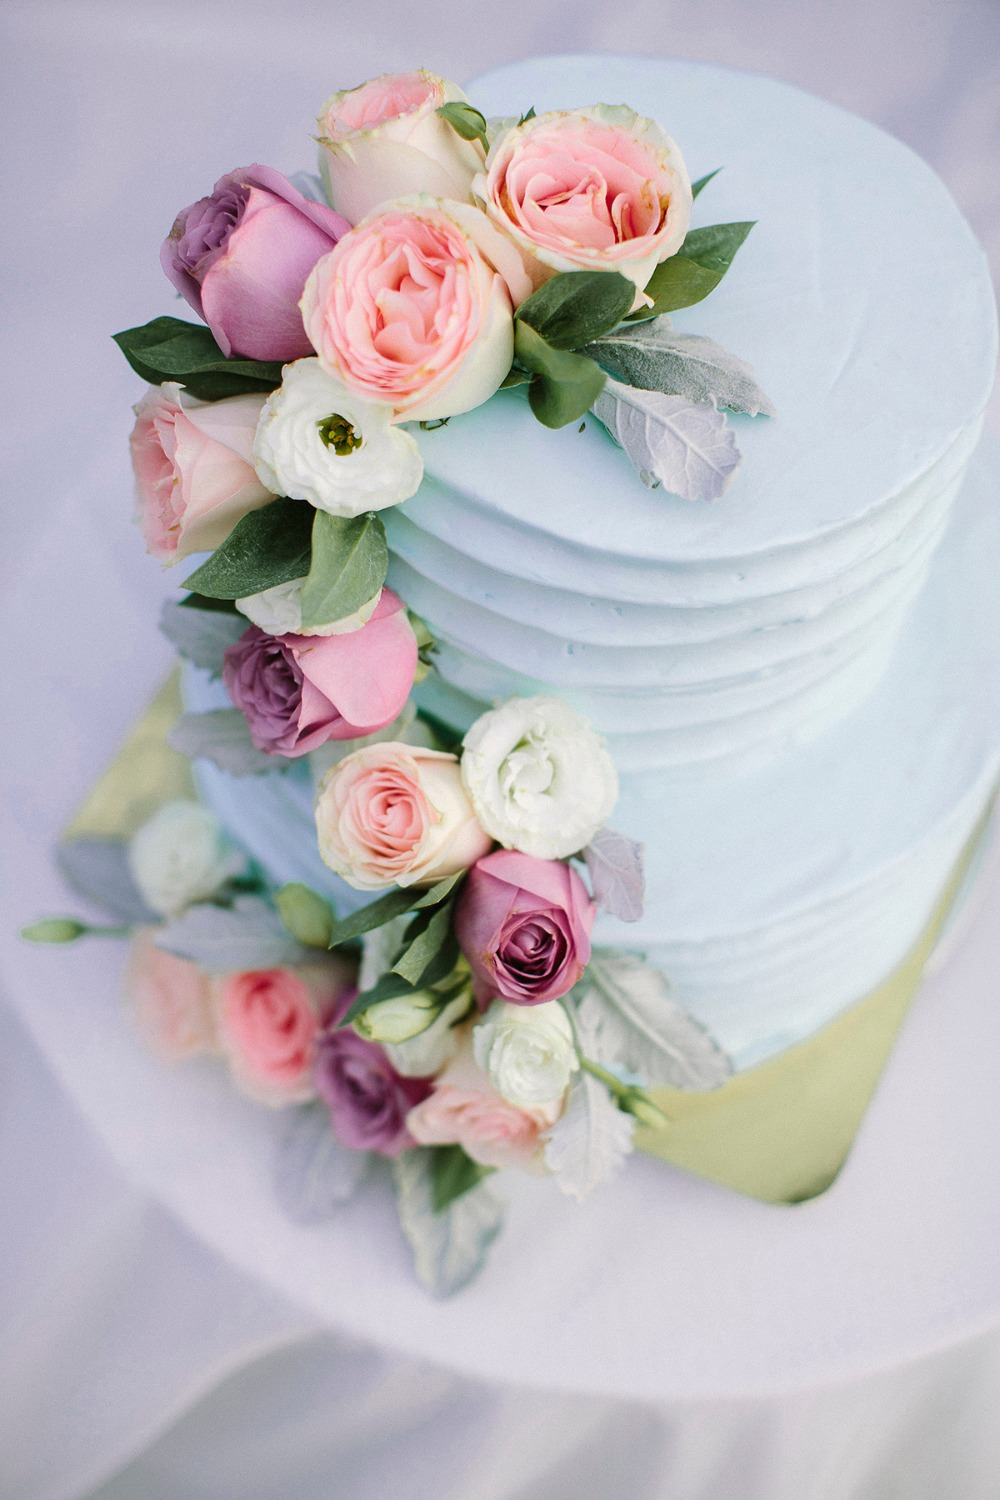 Blue wedding cake with florals